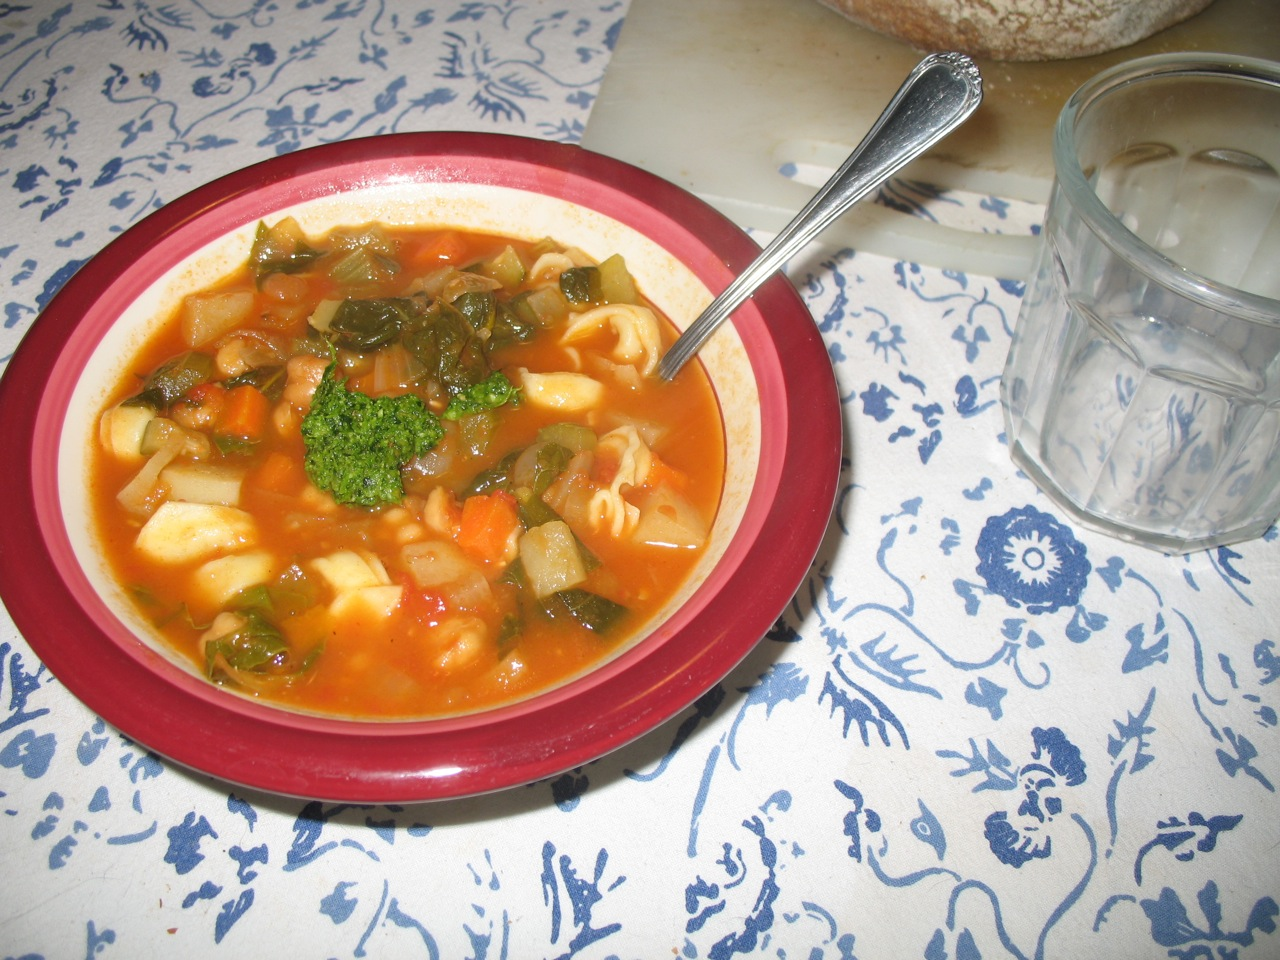 ... Monday: Smoky Minestrone with Cheese Tortellini and Parsley Pesto